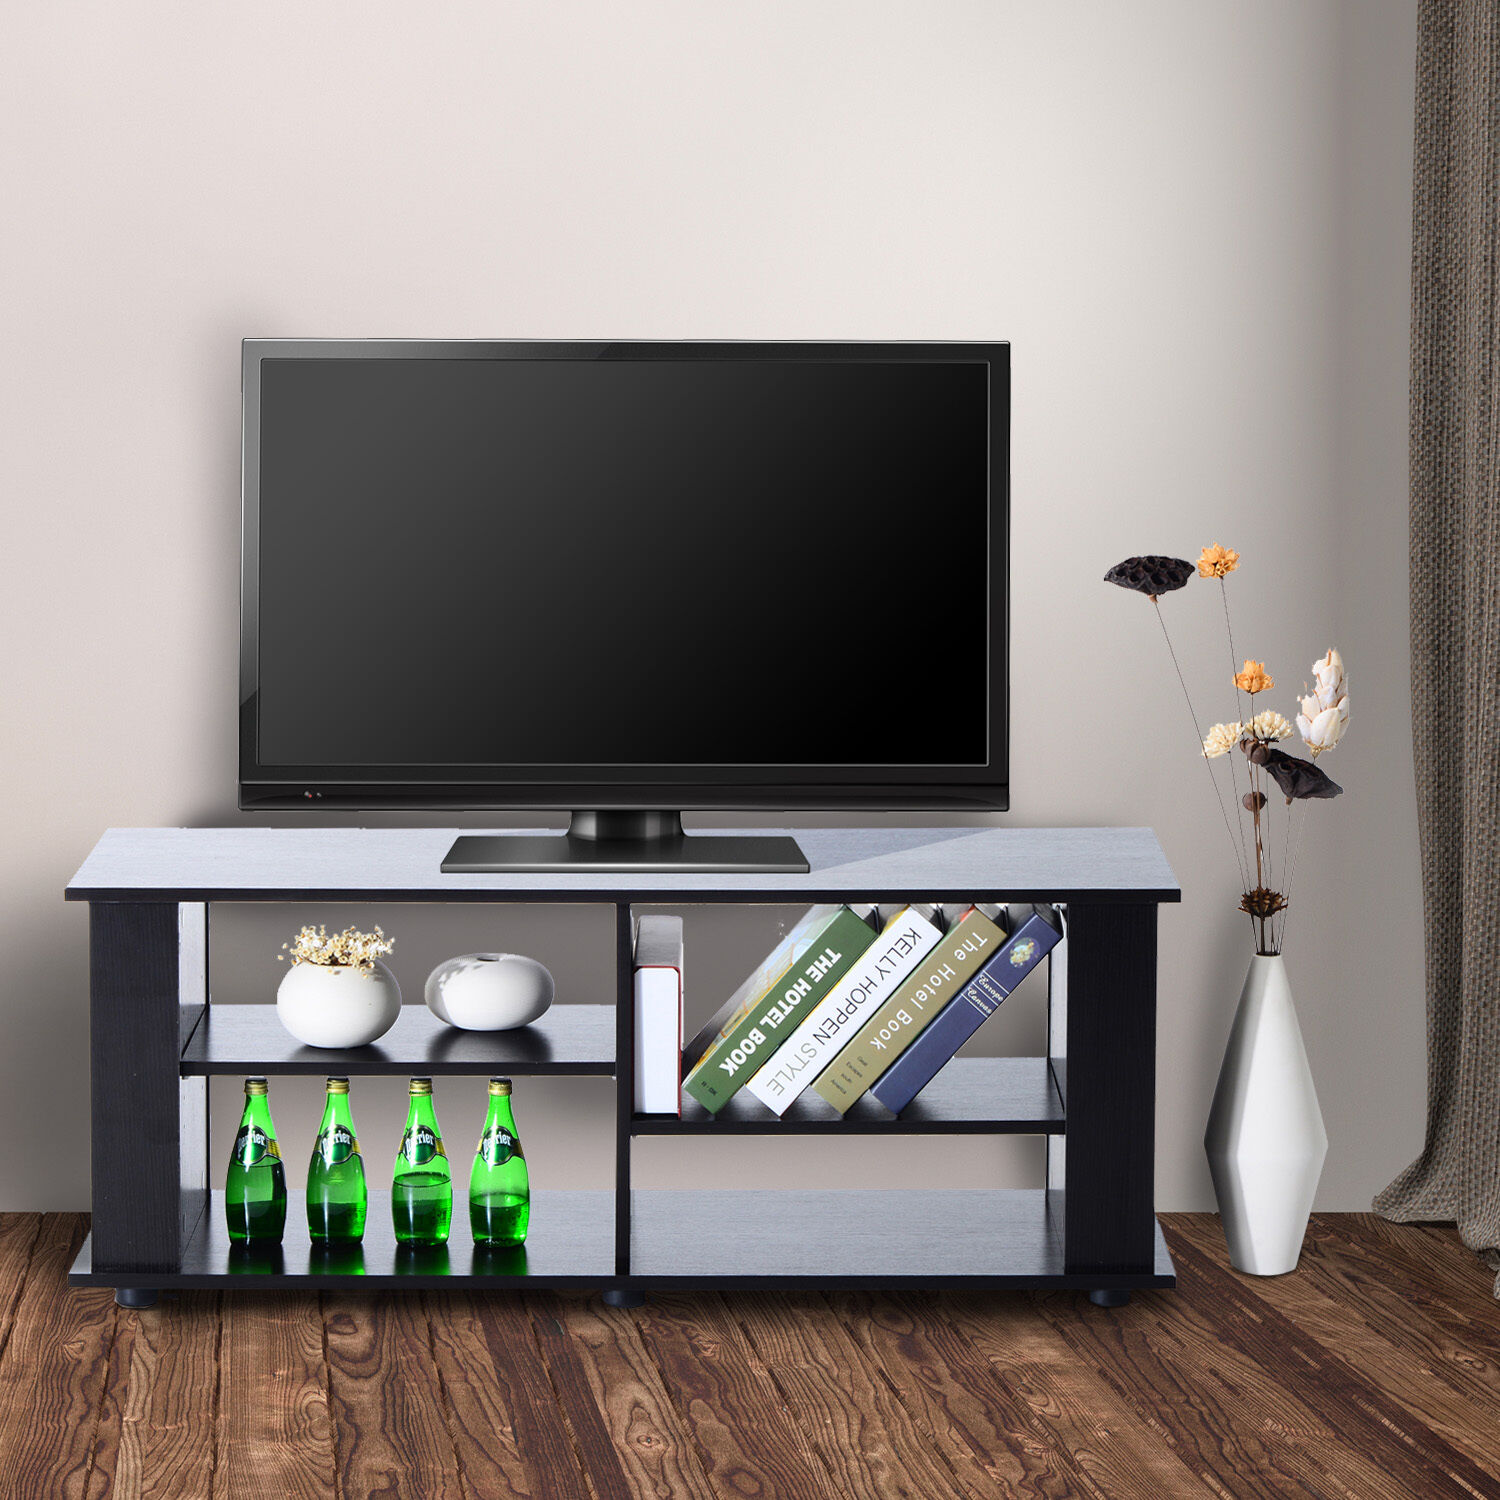 homcom tv lowboard board schrank tisch fernsehtisch regal holz schwarz eur 40 90 picclick at. Black Bedroom Furniture Sets. Home Design Ideas